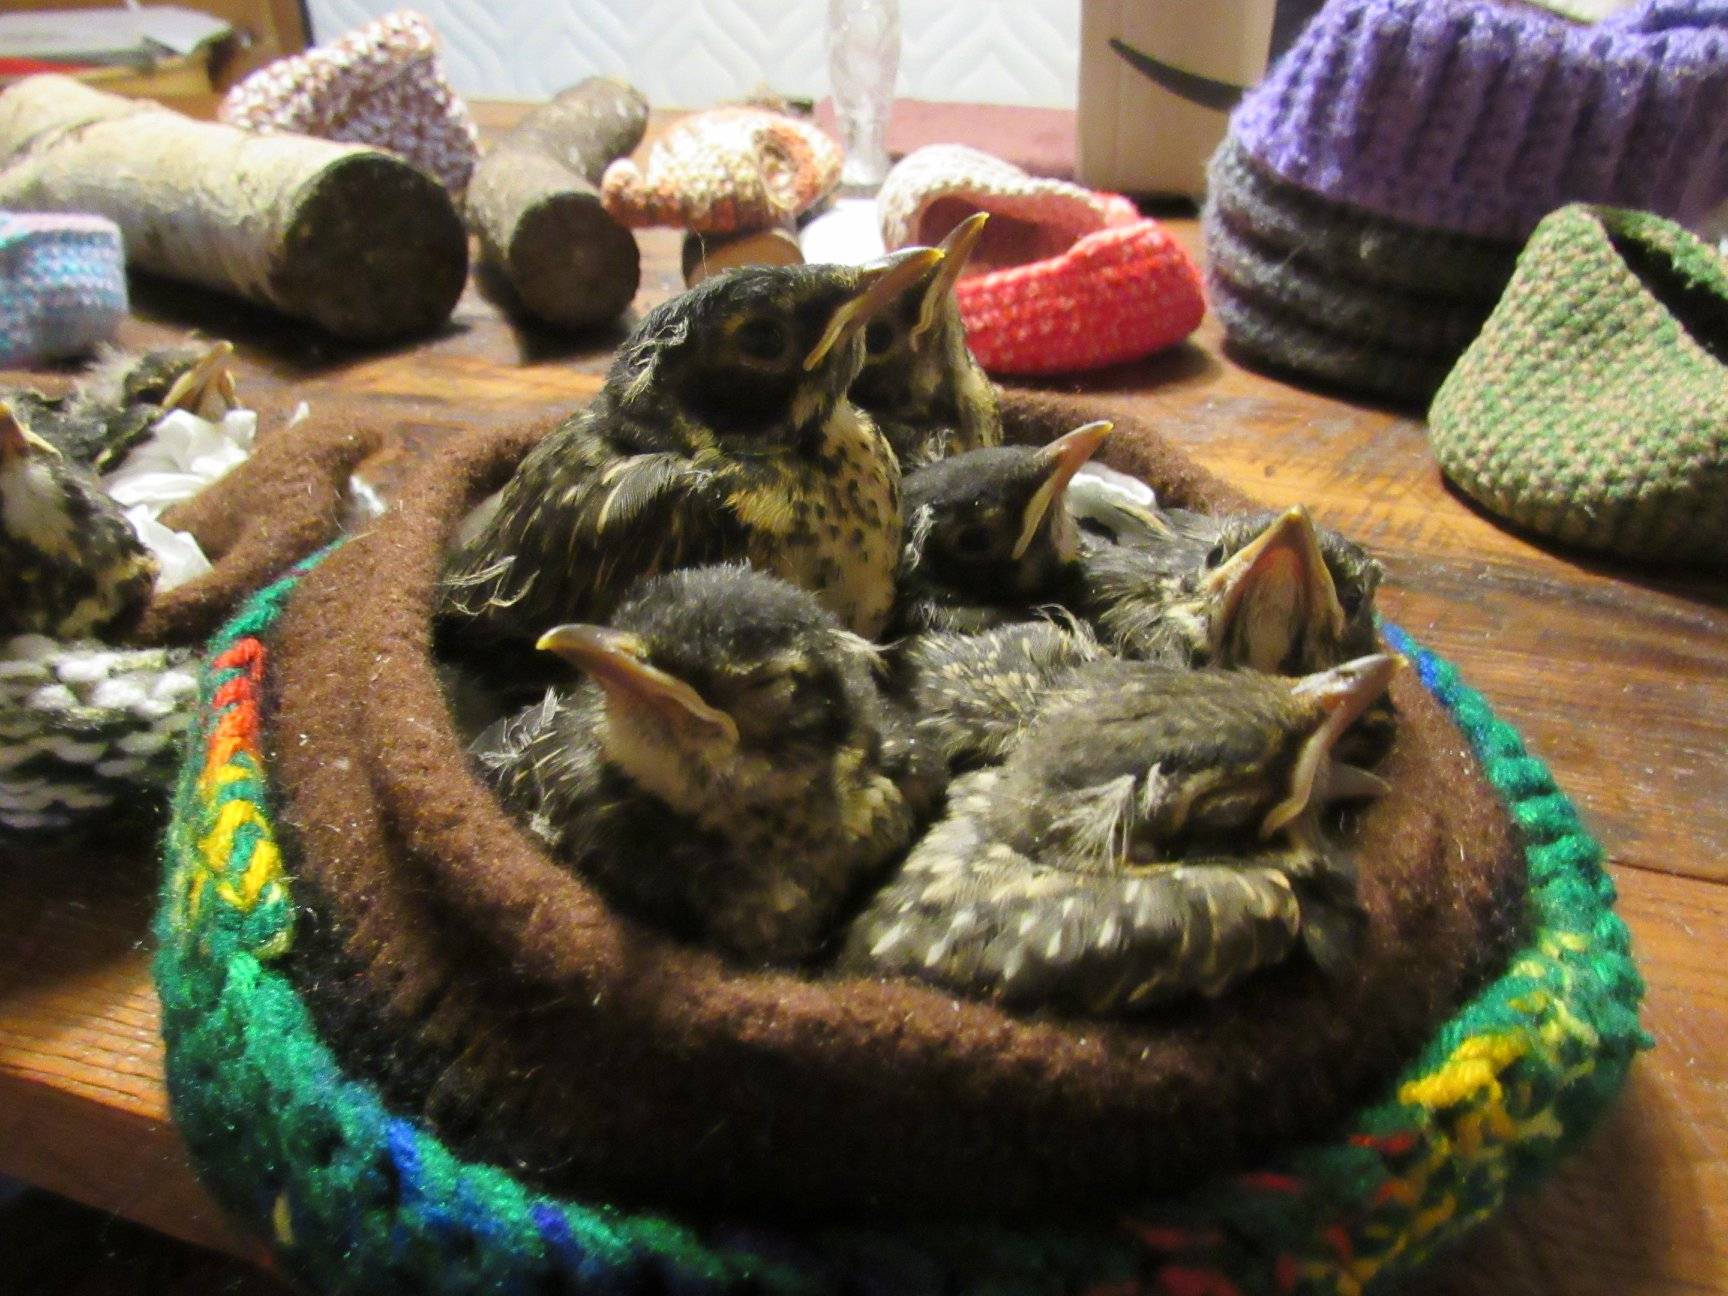 More baby American Robins making great use of the crocheted birds nests.